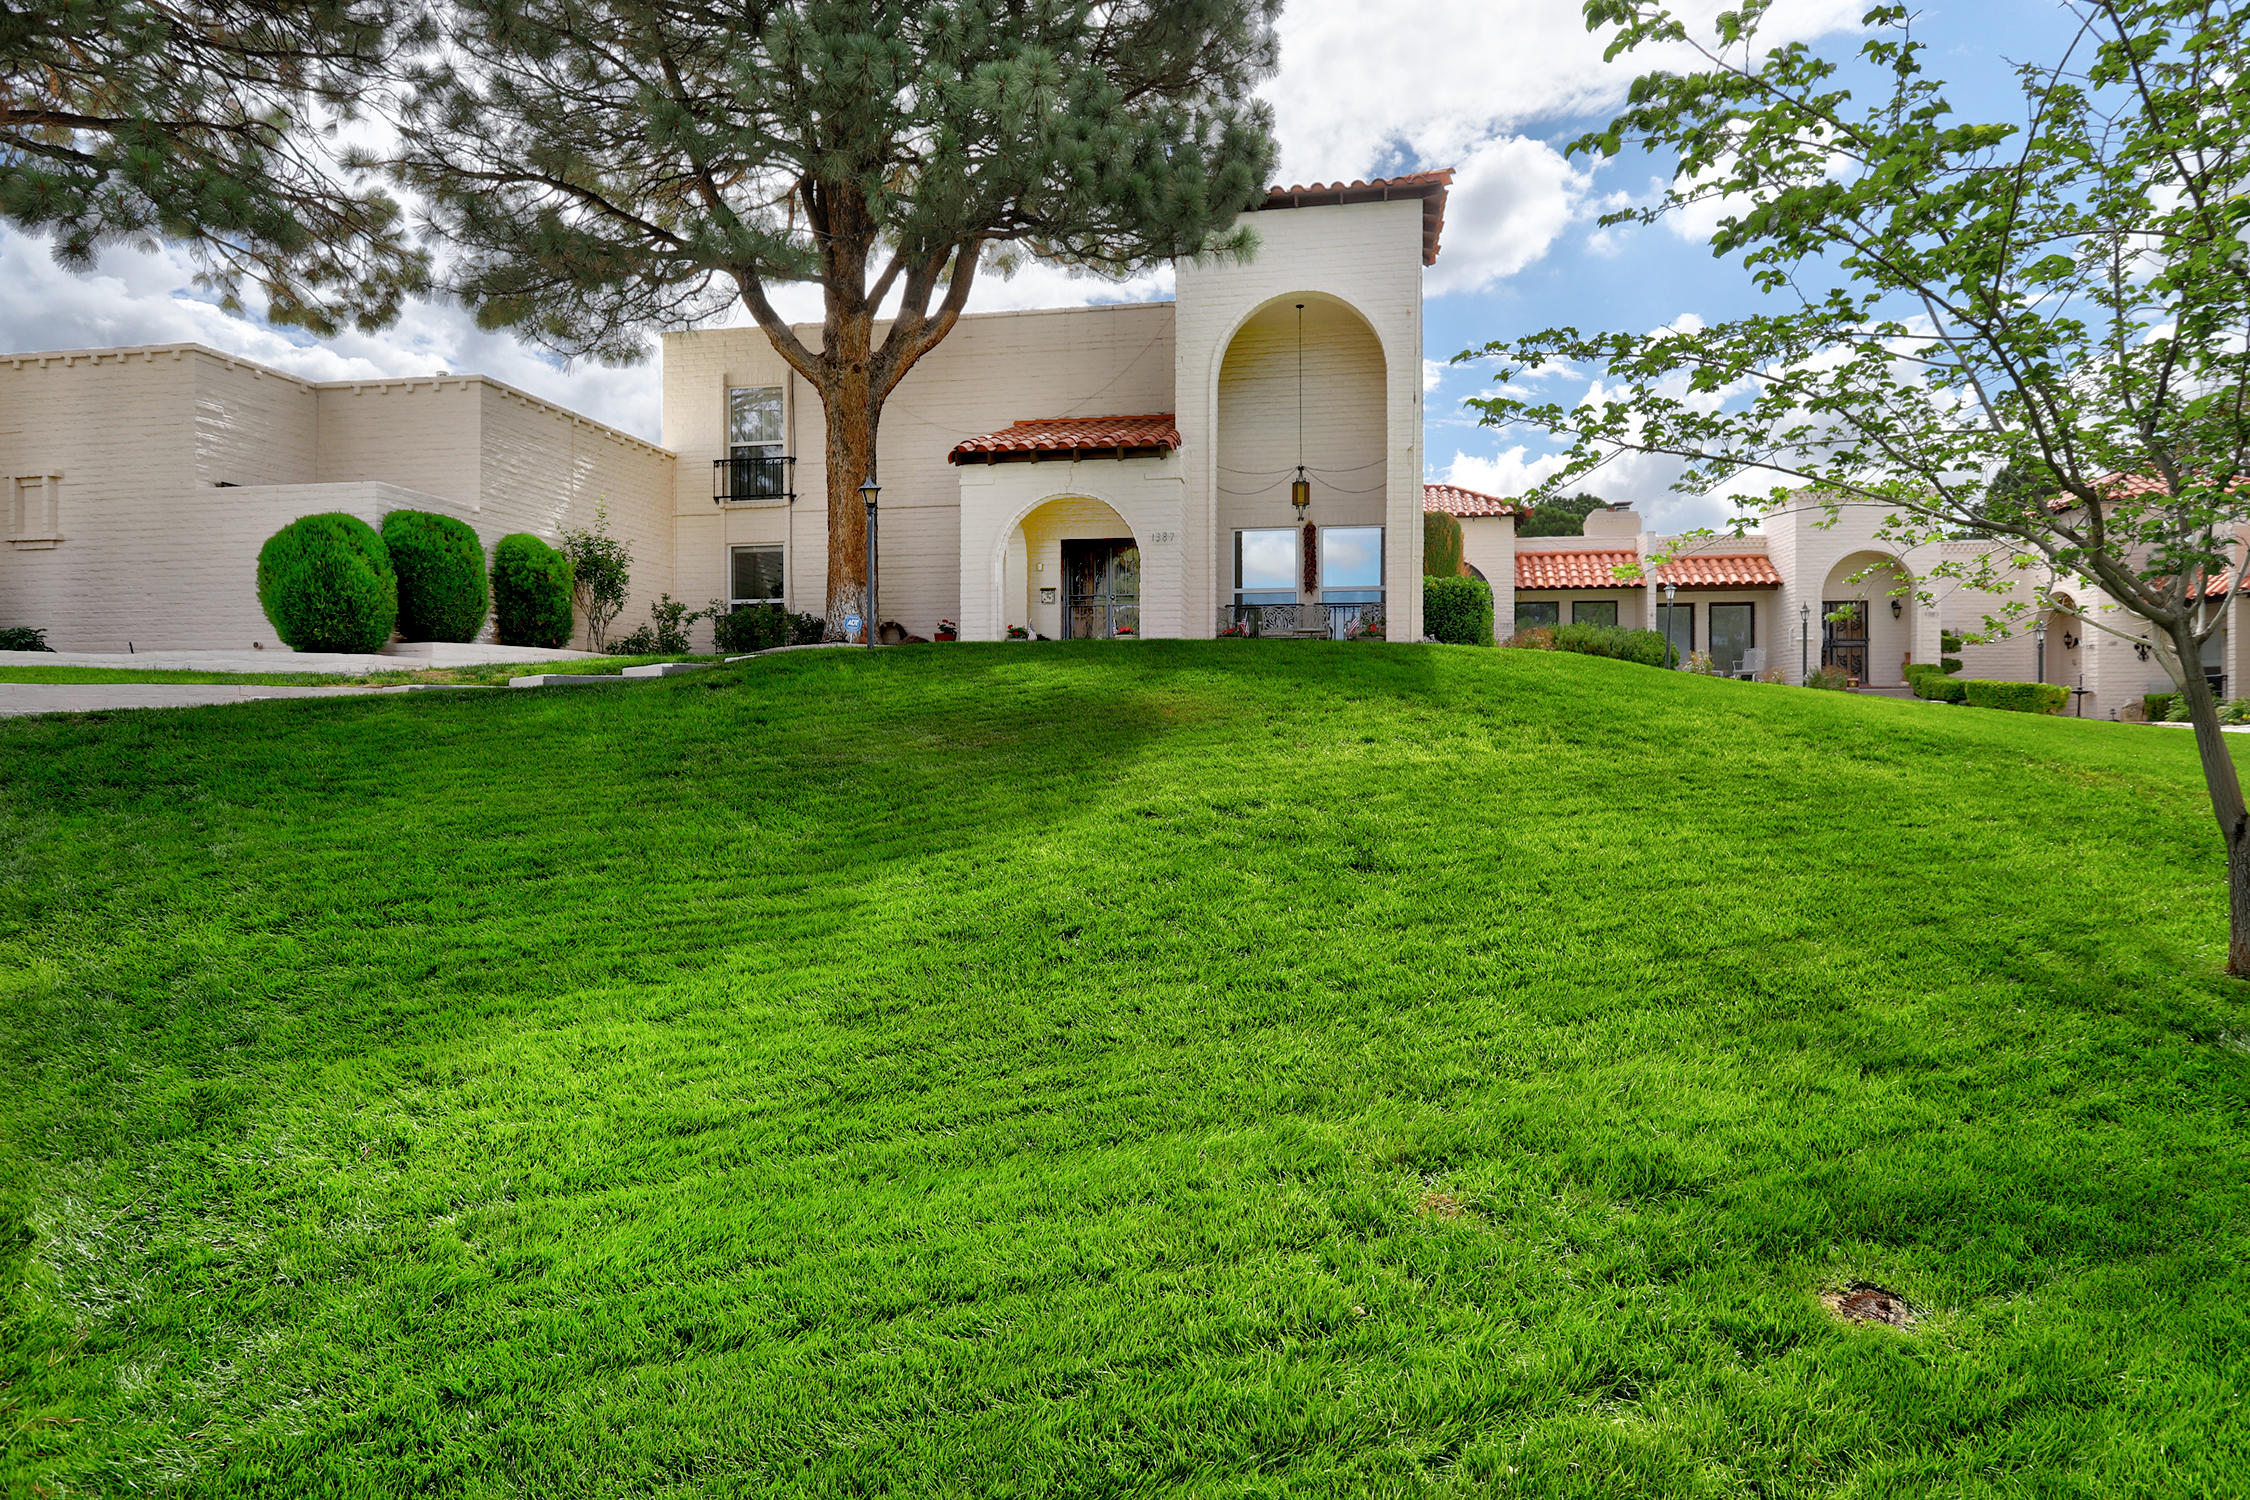 Have it all in this Beautiful Town home Located in the community of Villa Serena in FOUR HILLS w golf course & country club! Spacious, Light, Bright & Airy Floorplan w VIEWS! Soaring Beamed Ceiling w Skylights & Dramatic Fireplace, easy ambiance on cozy nights! Updated Kitchen w granite counter, tile back splash, Under cabinets lighting over kitchen counters + more. Master Bedroom w walk-in closet & grand bathroom w double sinks, a button that activates a recirculating pump from tankless water heater + Master is Downstairs Separate from other bedrooms. Light filled Sunroom/Studio/Office/Work Out Room is heated PLUS skylights. 2 bedrooms up & an OUTSTANING VIEW Balcony! Designer chandelier & light fixtures are matching, Alarm system is wired w WIFI ++ WOW Ready for you to Enjoy!